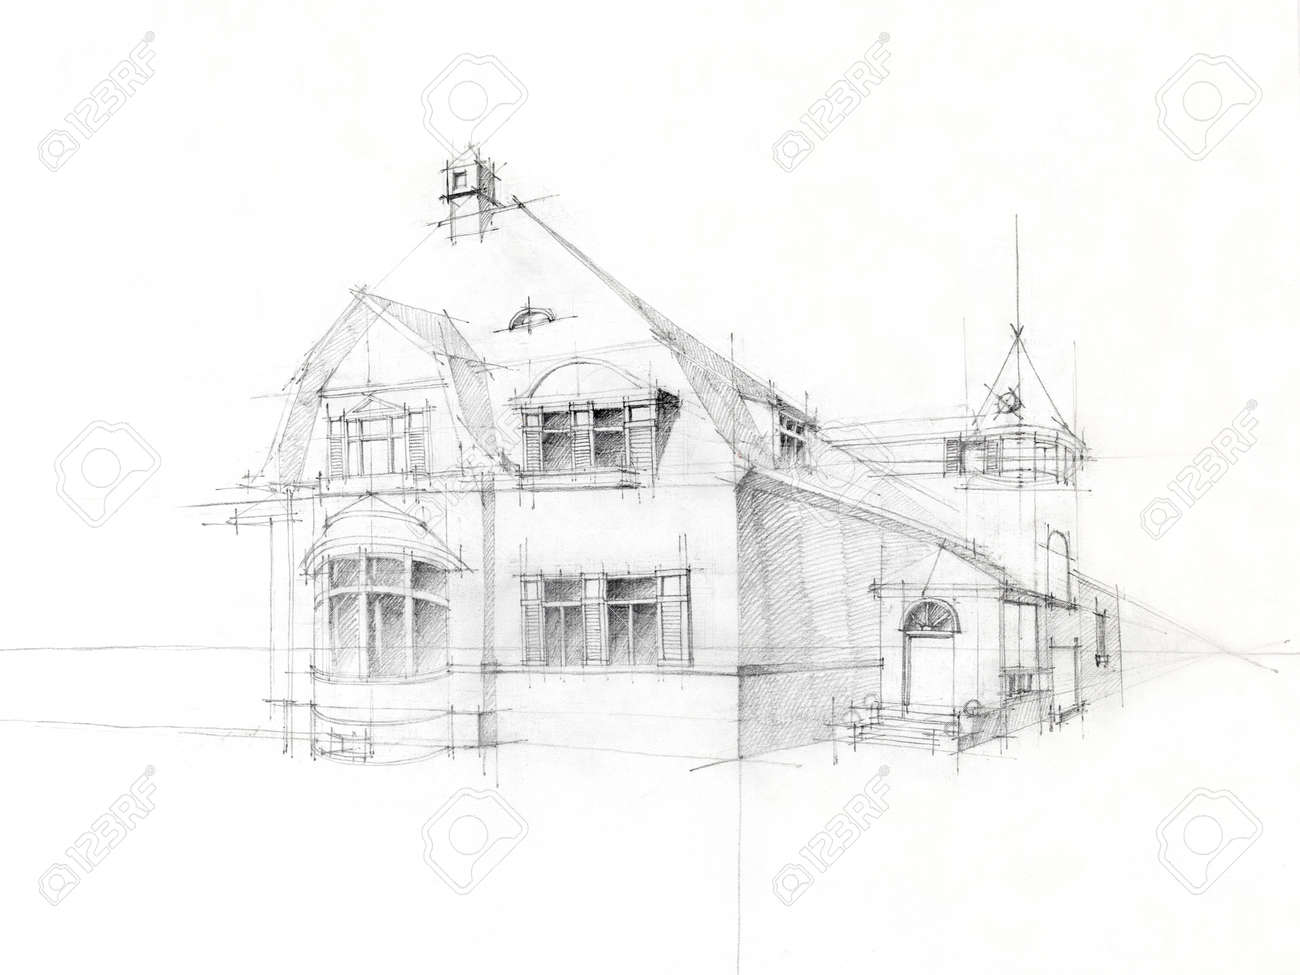 black and white architectural perspective of old house, drawn by hand Stock Photo - 13342724